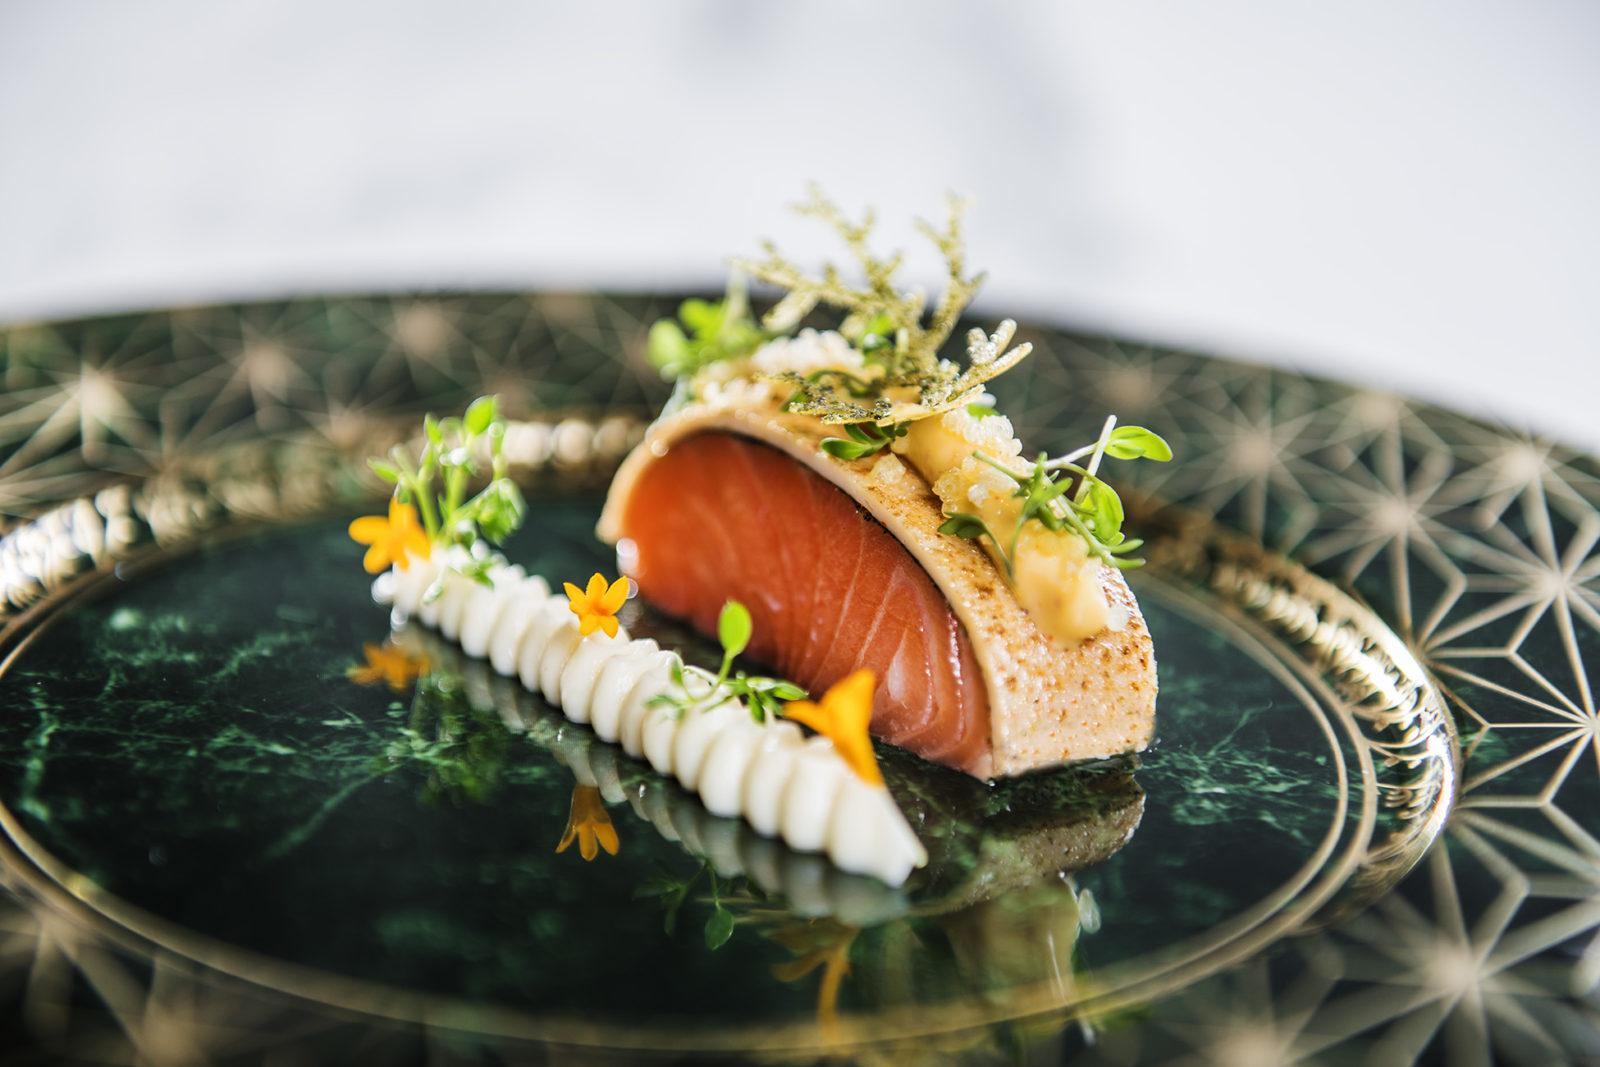 A piece of salmon served in the Michelin restaurant